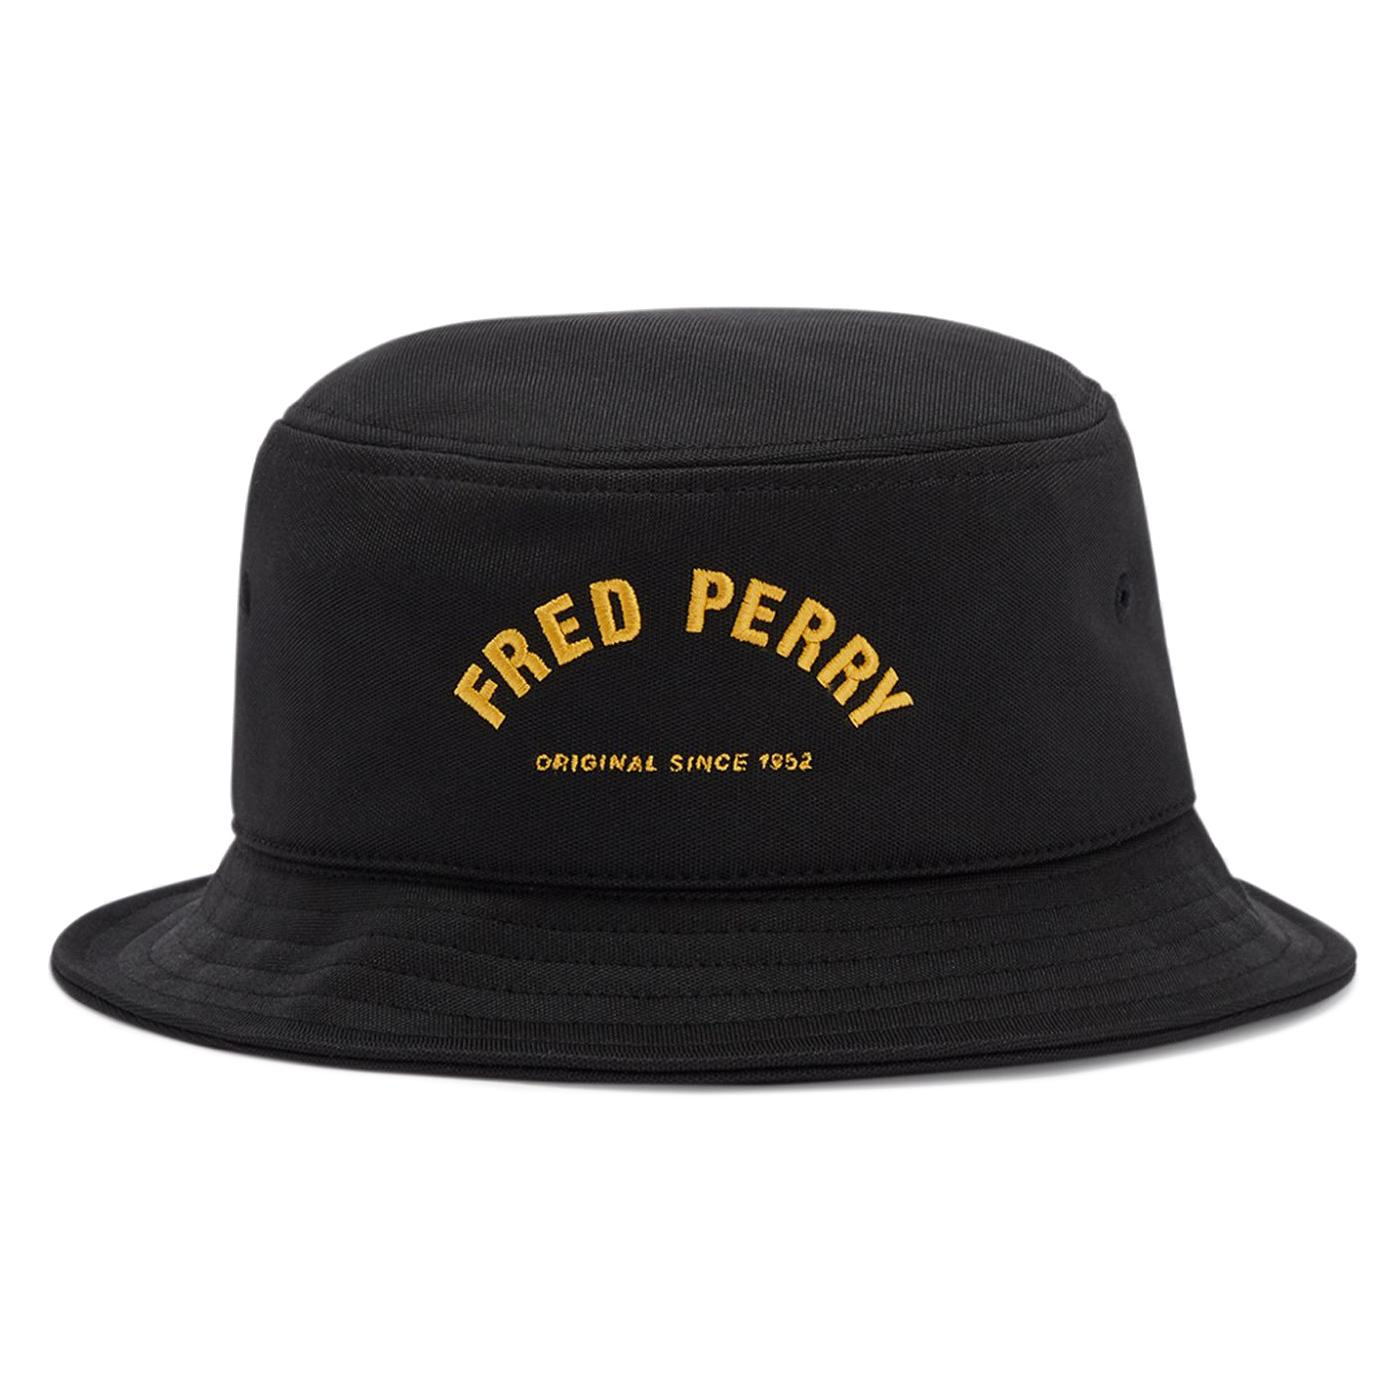 FRED PERRY Arch Branded Tricot Retro Bucket Hat B